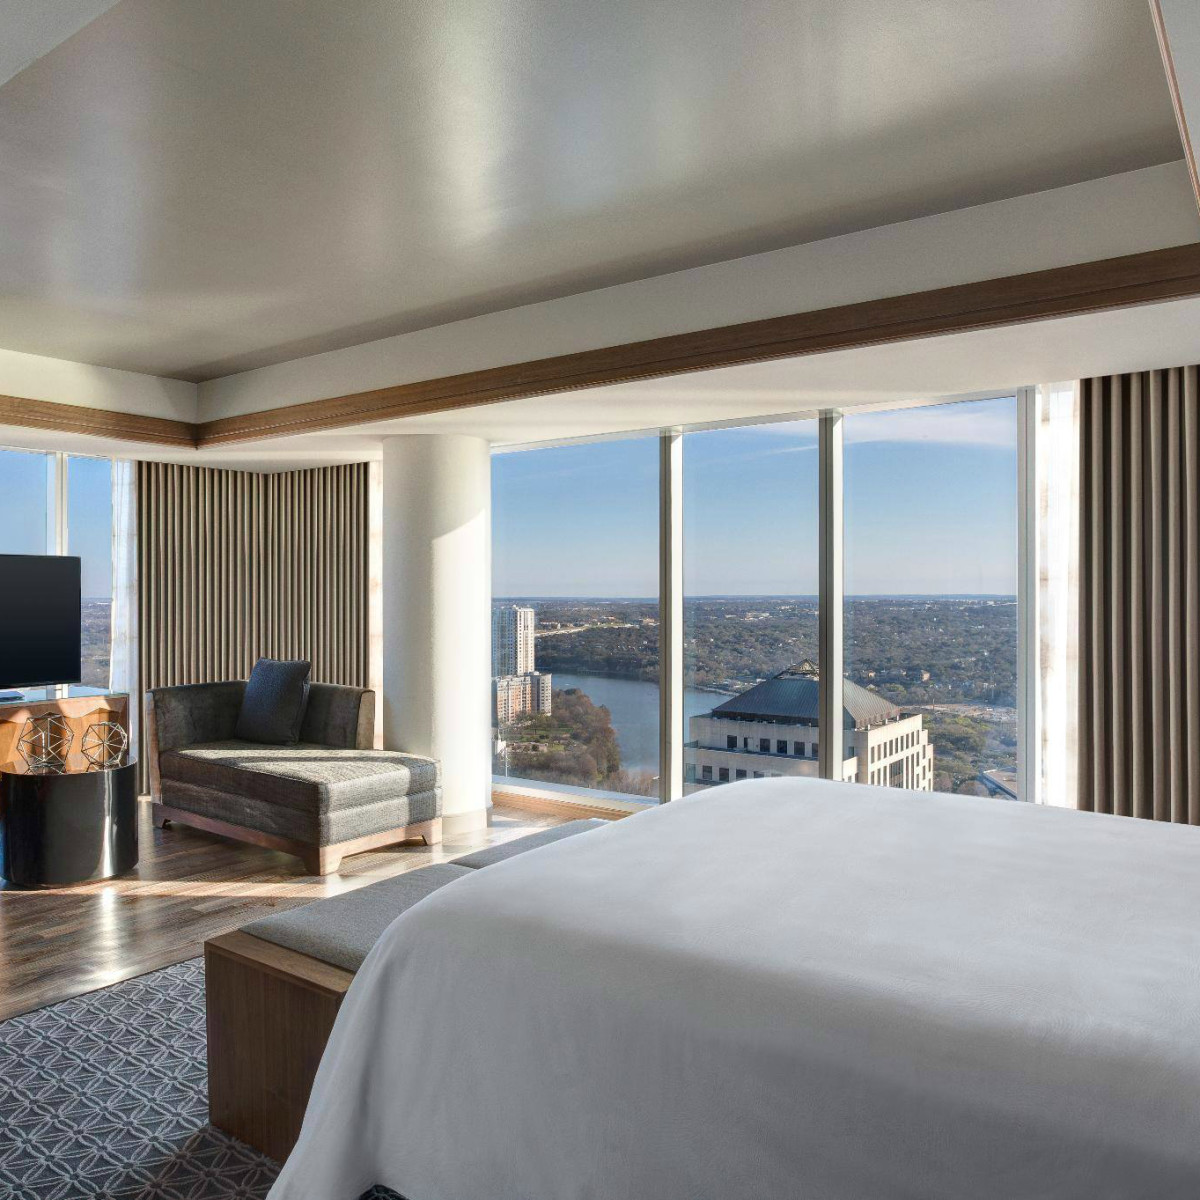 JW Marriott Austin hotel guest room interior 2015